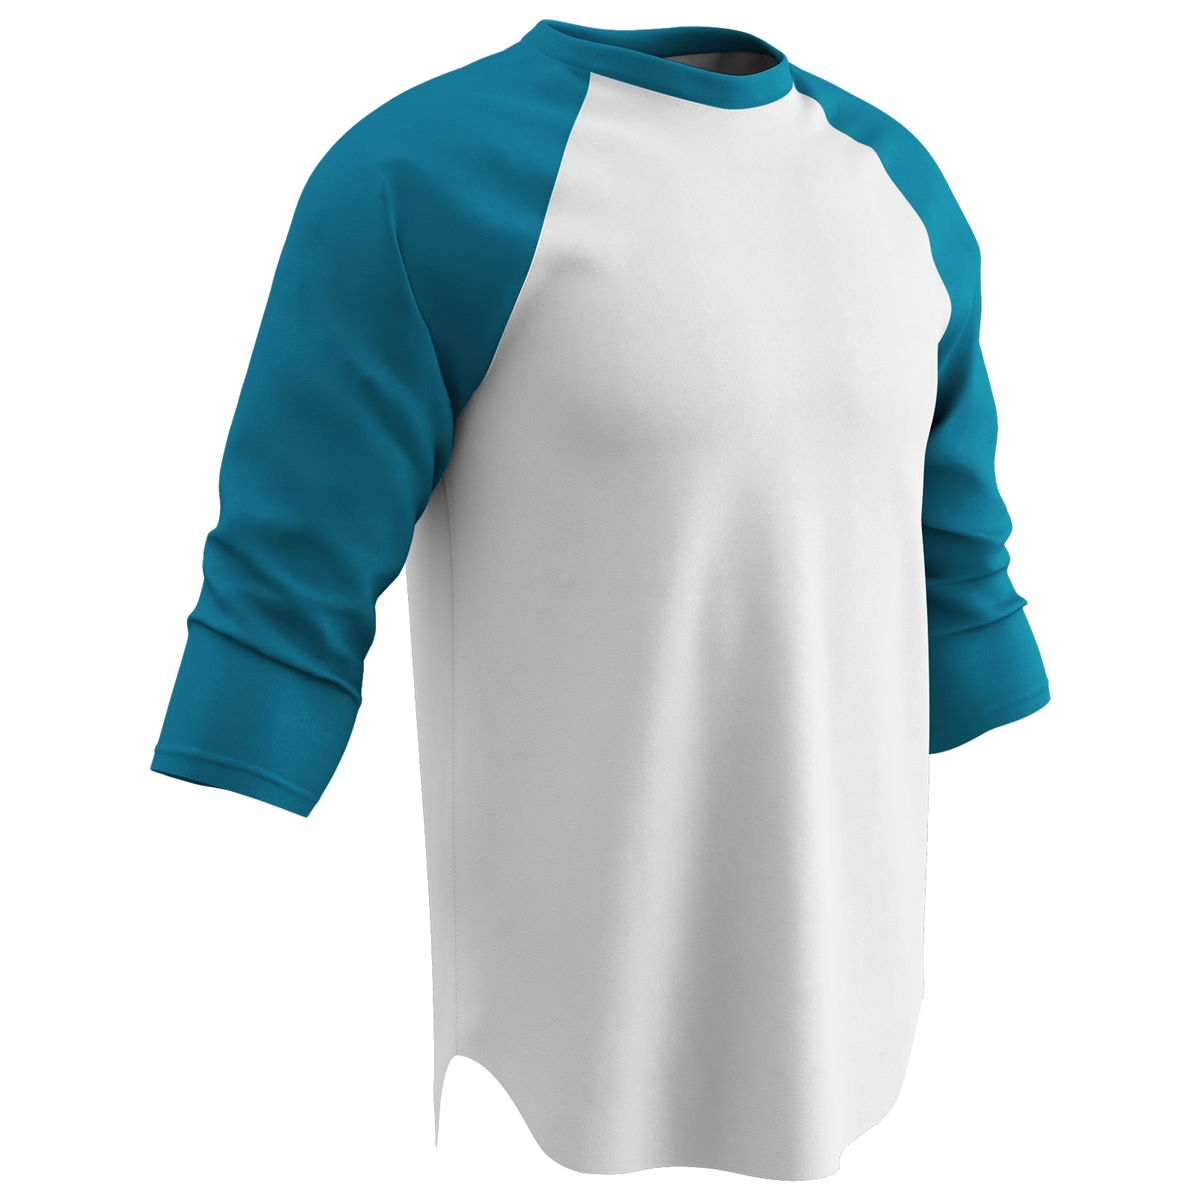 e90f67a1783 Champro Cotton 3/4 Sleeve Youth Baseball Jersey   BS8Y ...